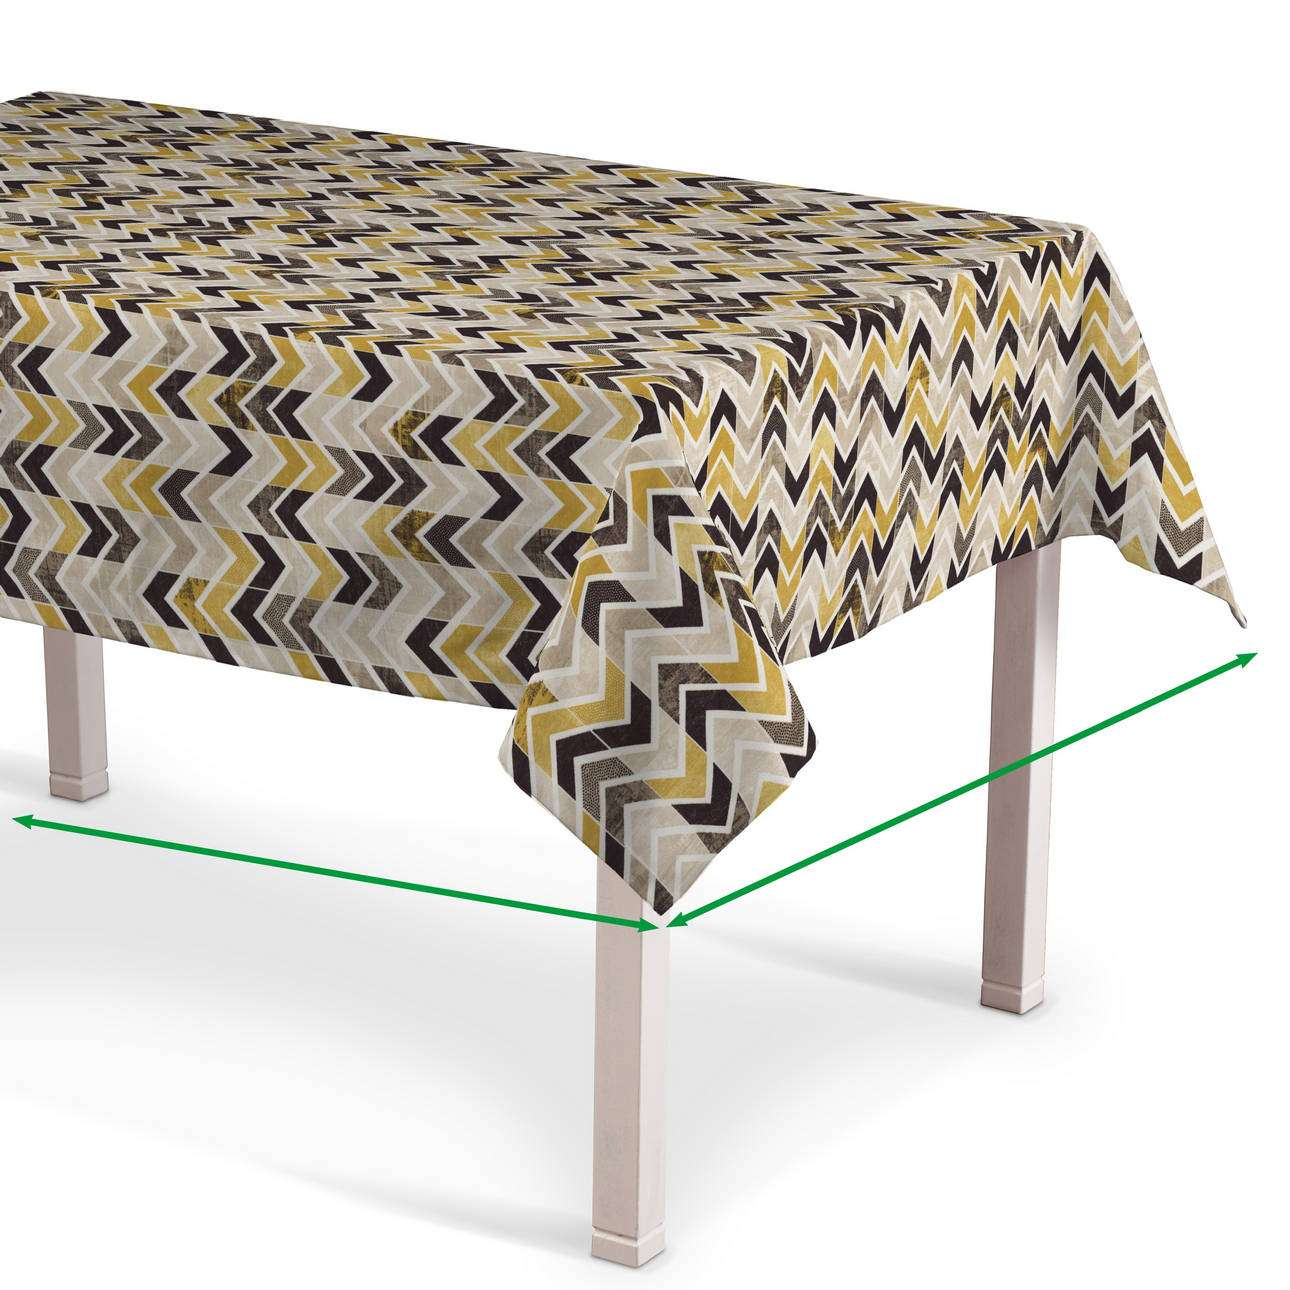 Rectangular tablecloth in collection Modern, fabric: 142-79